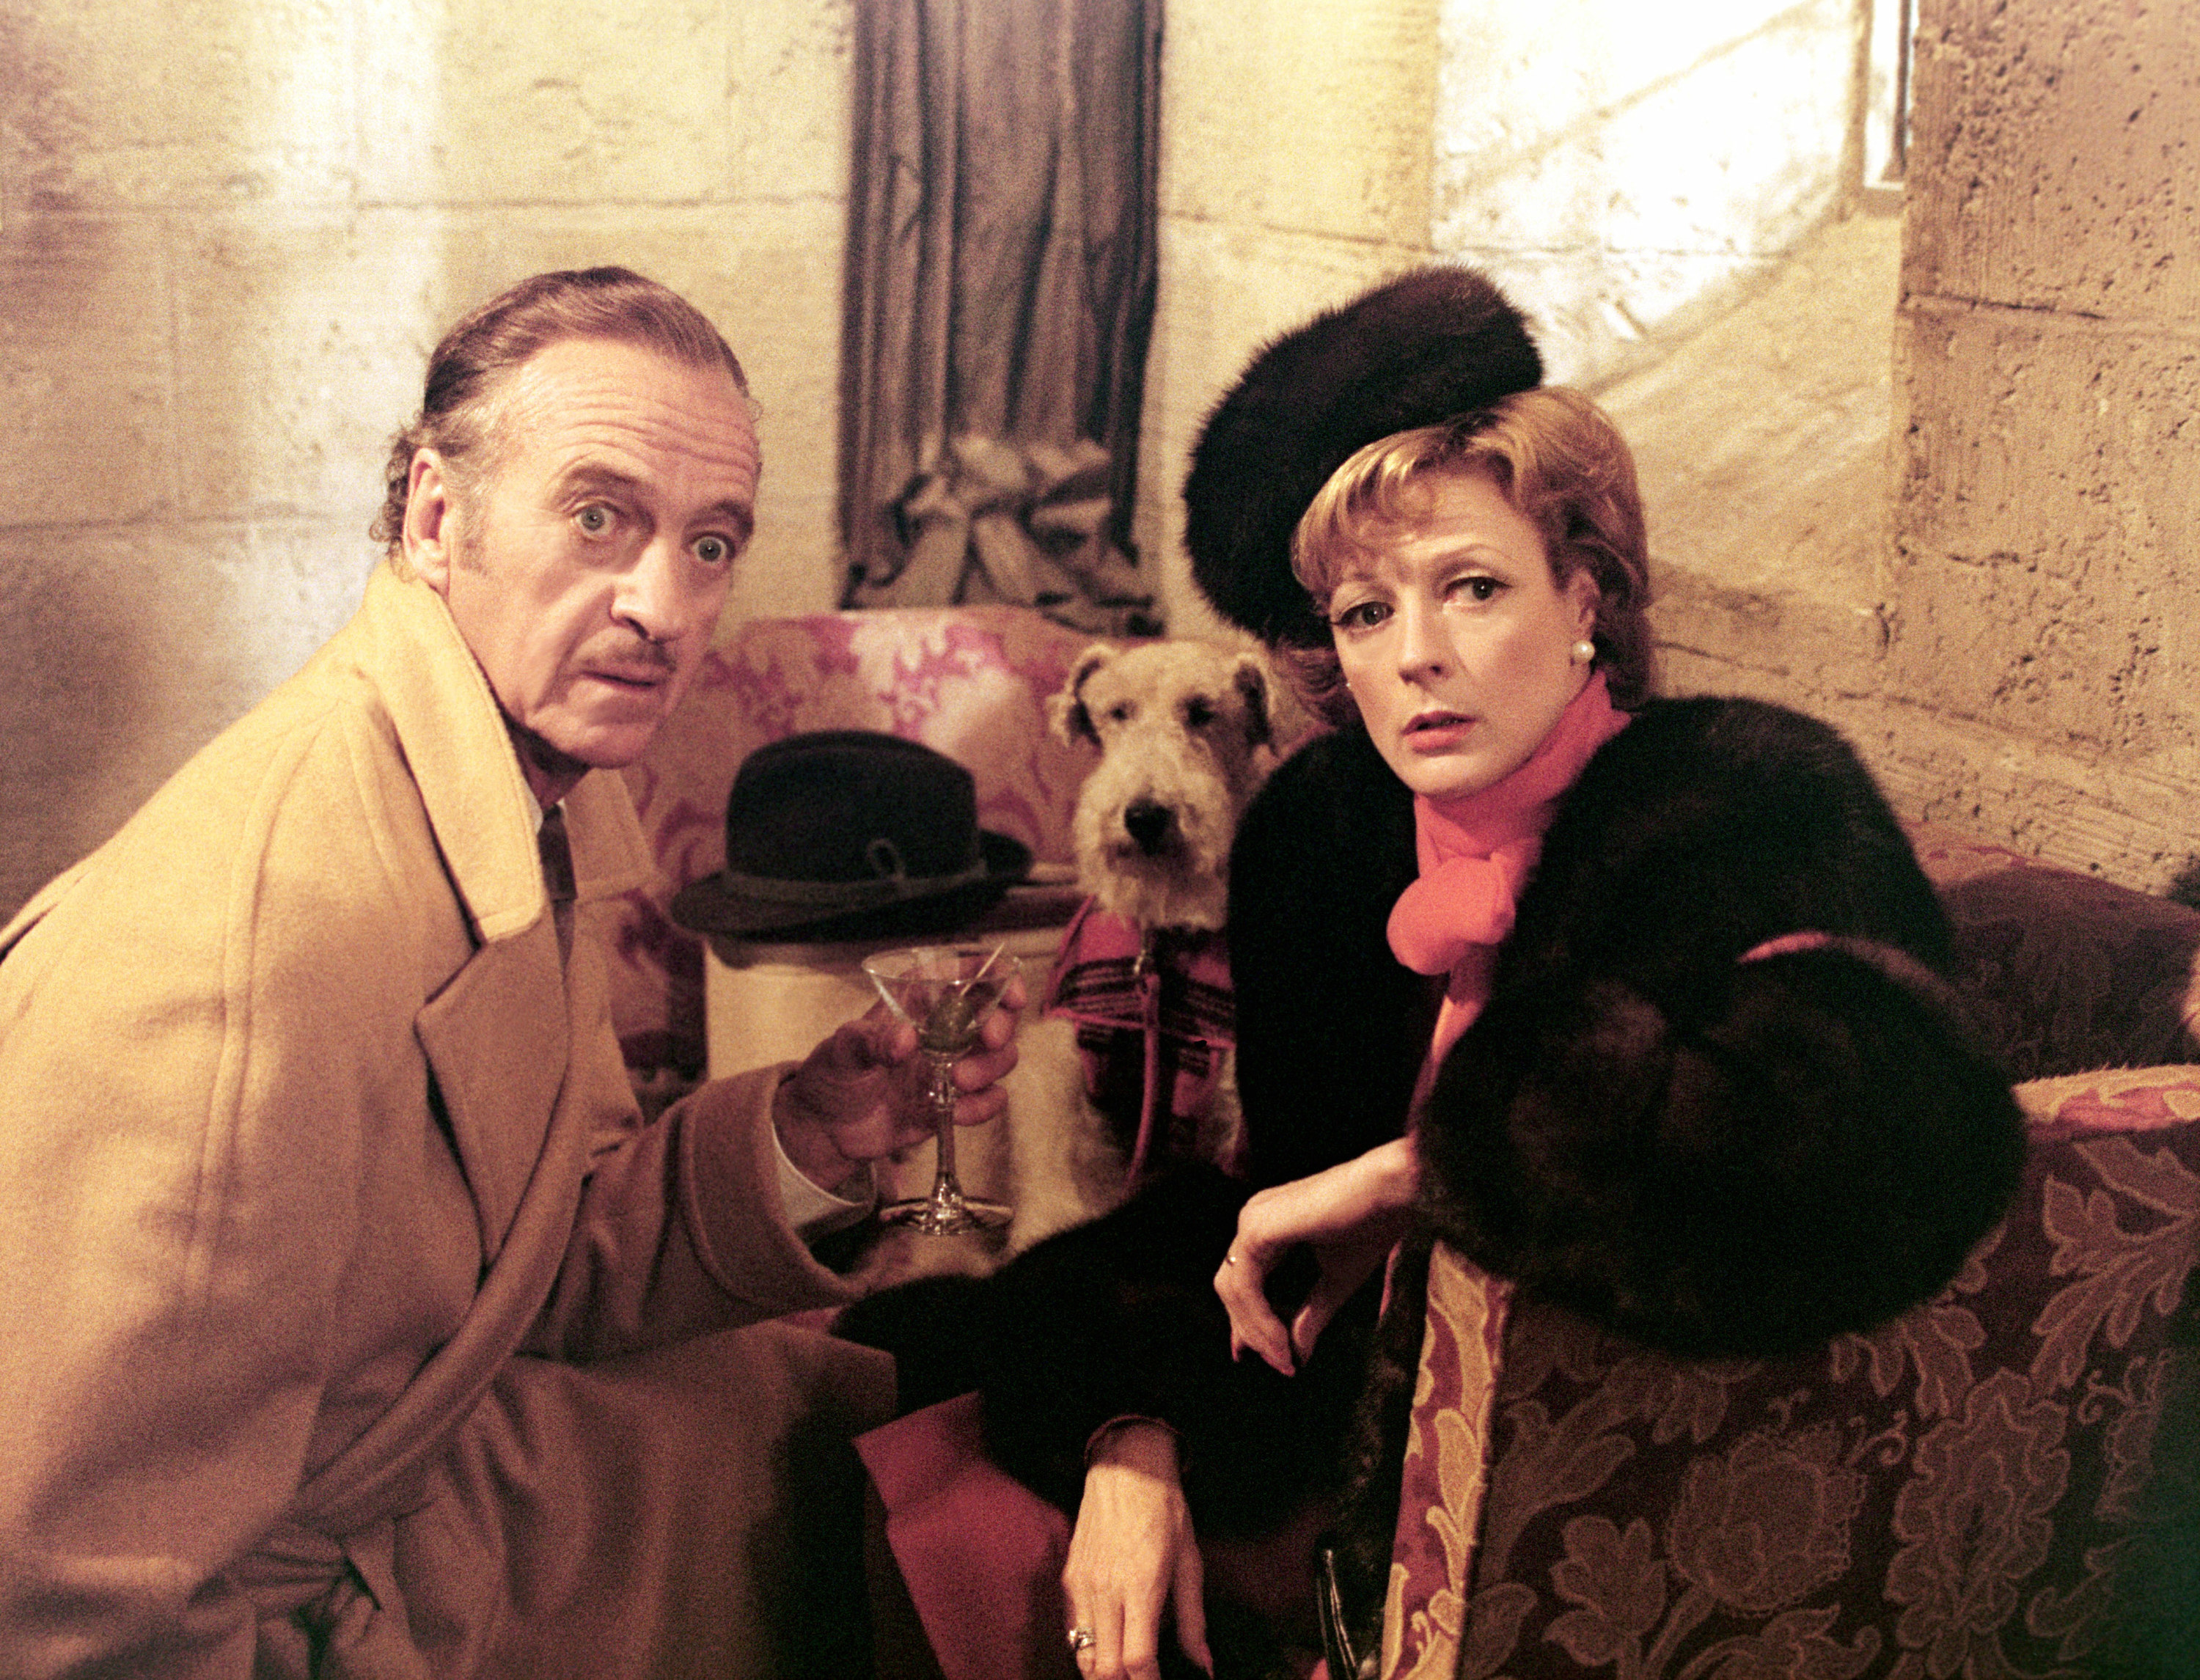 David Niven, Maggie Smith, and a dog sitting on a couch